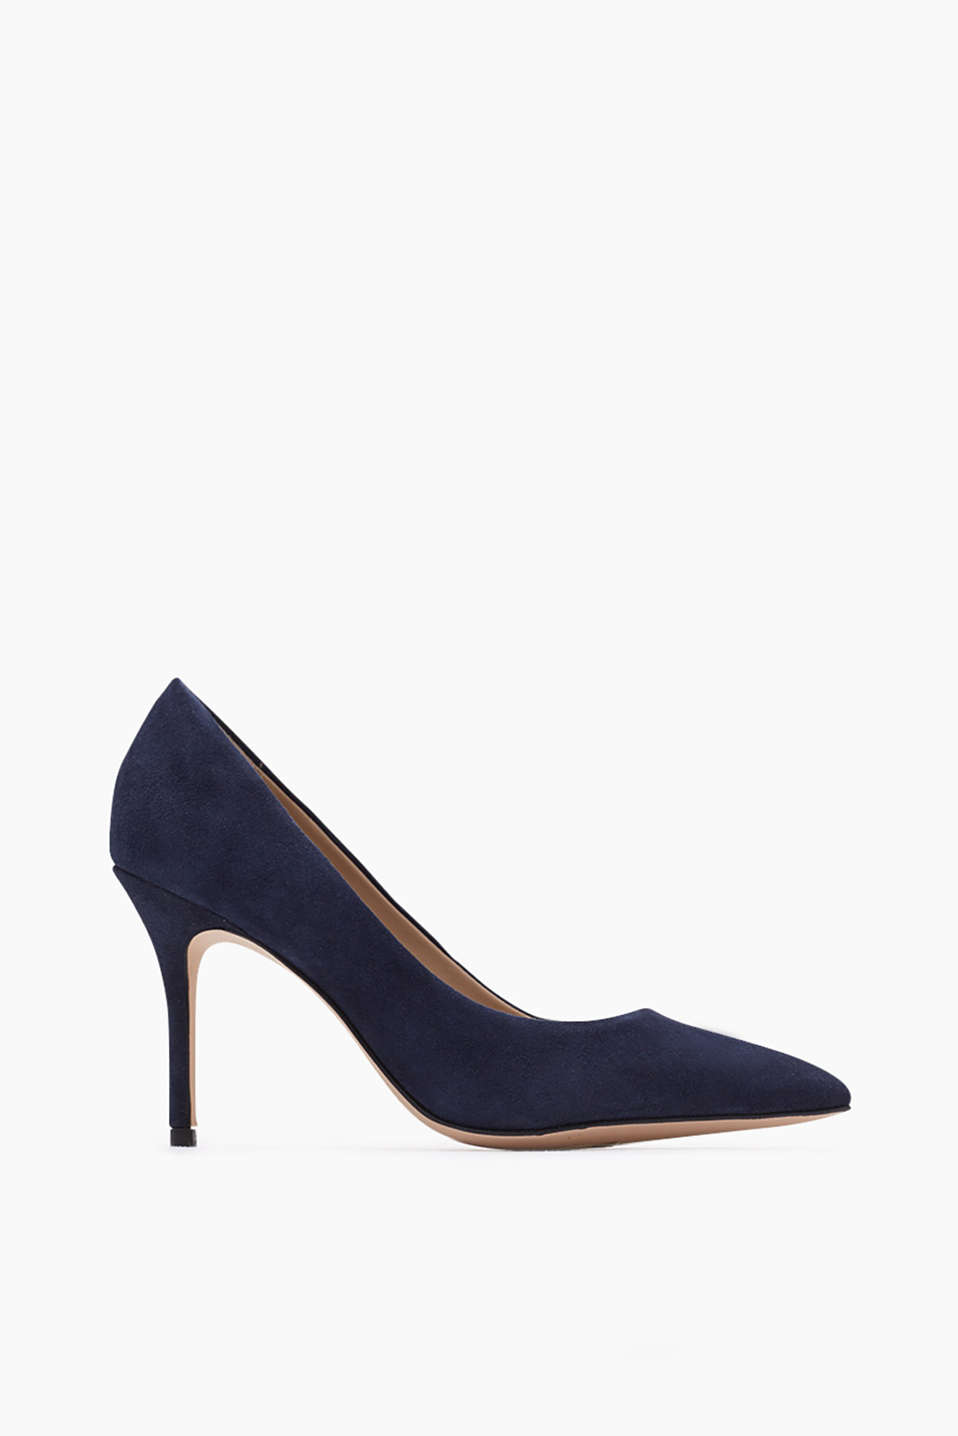 Pointy heels! Court shoes with a kitten heel